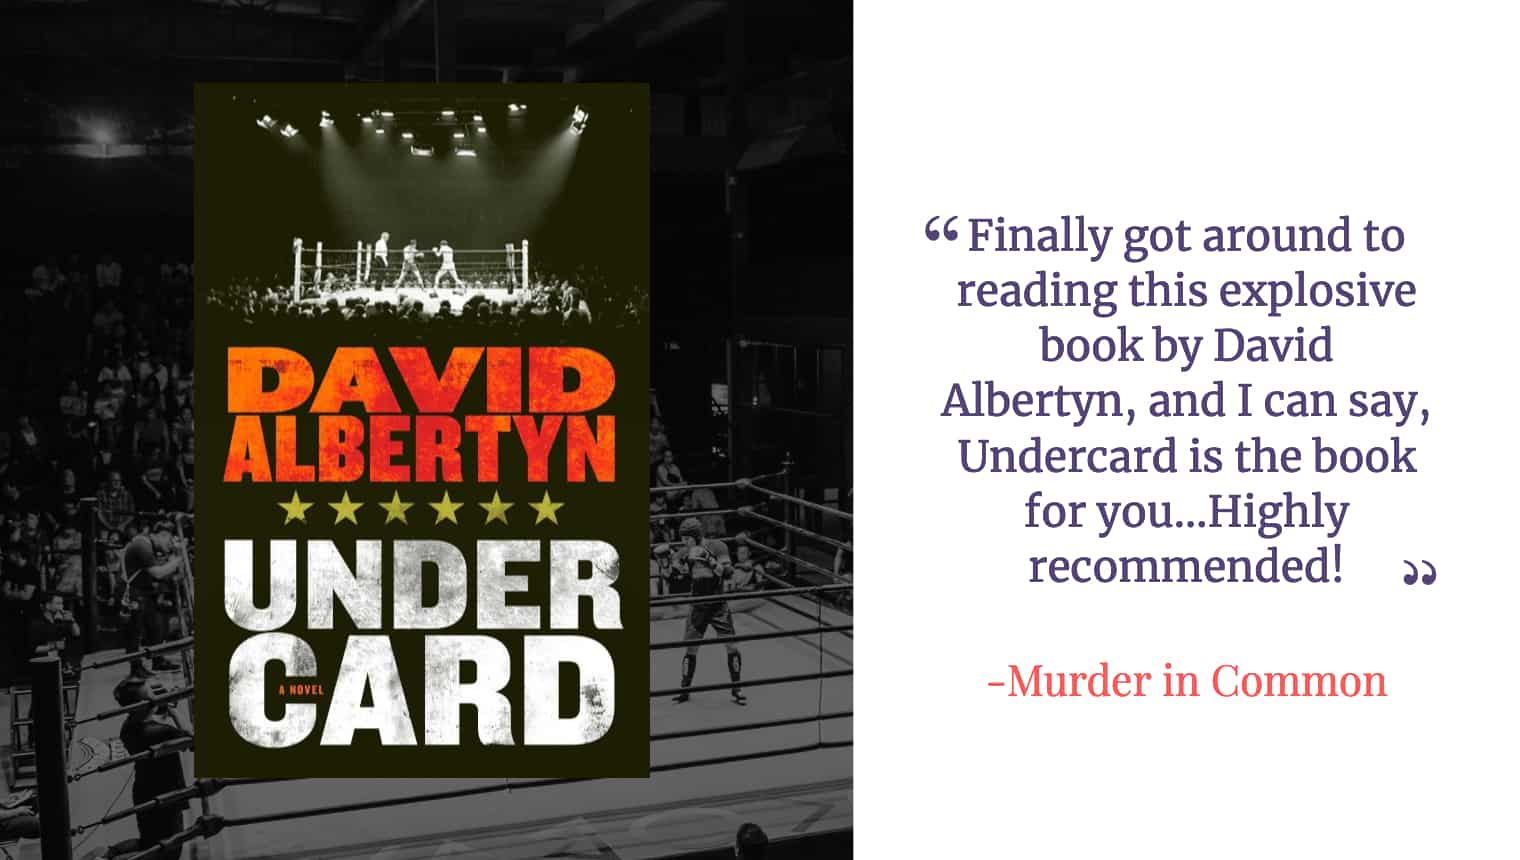 Undercard book review by Murder in Common